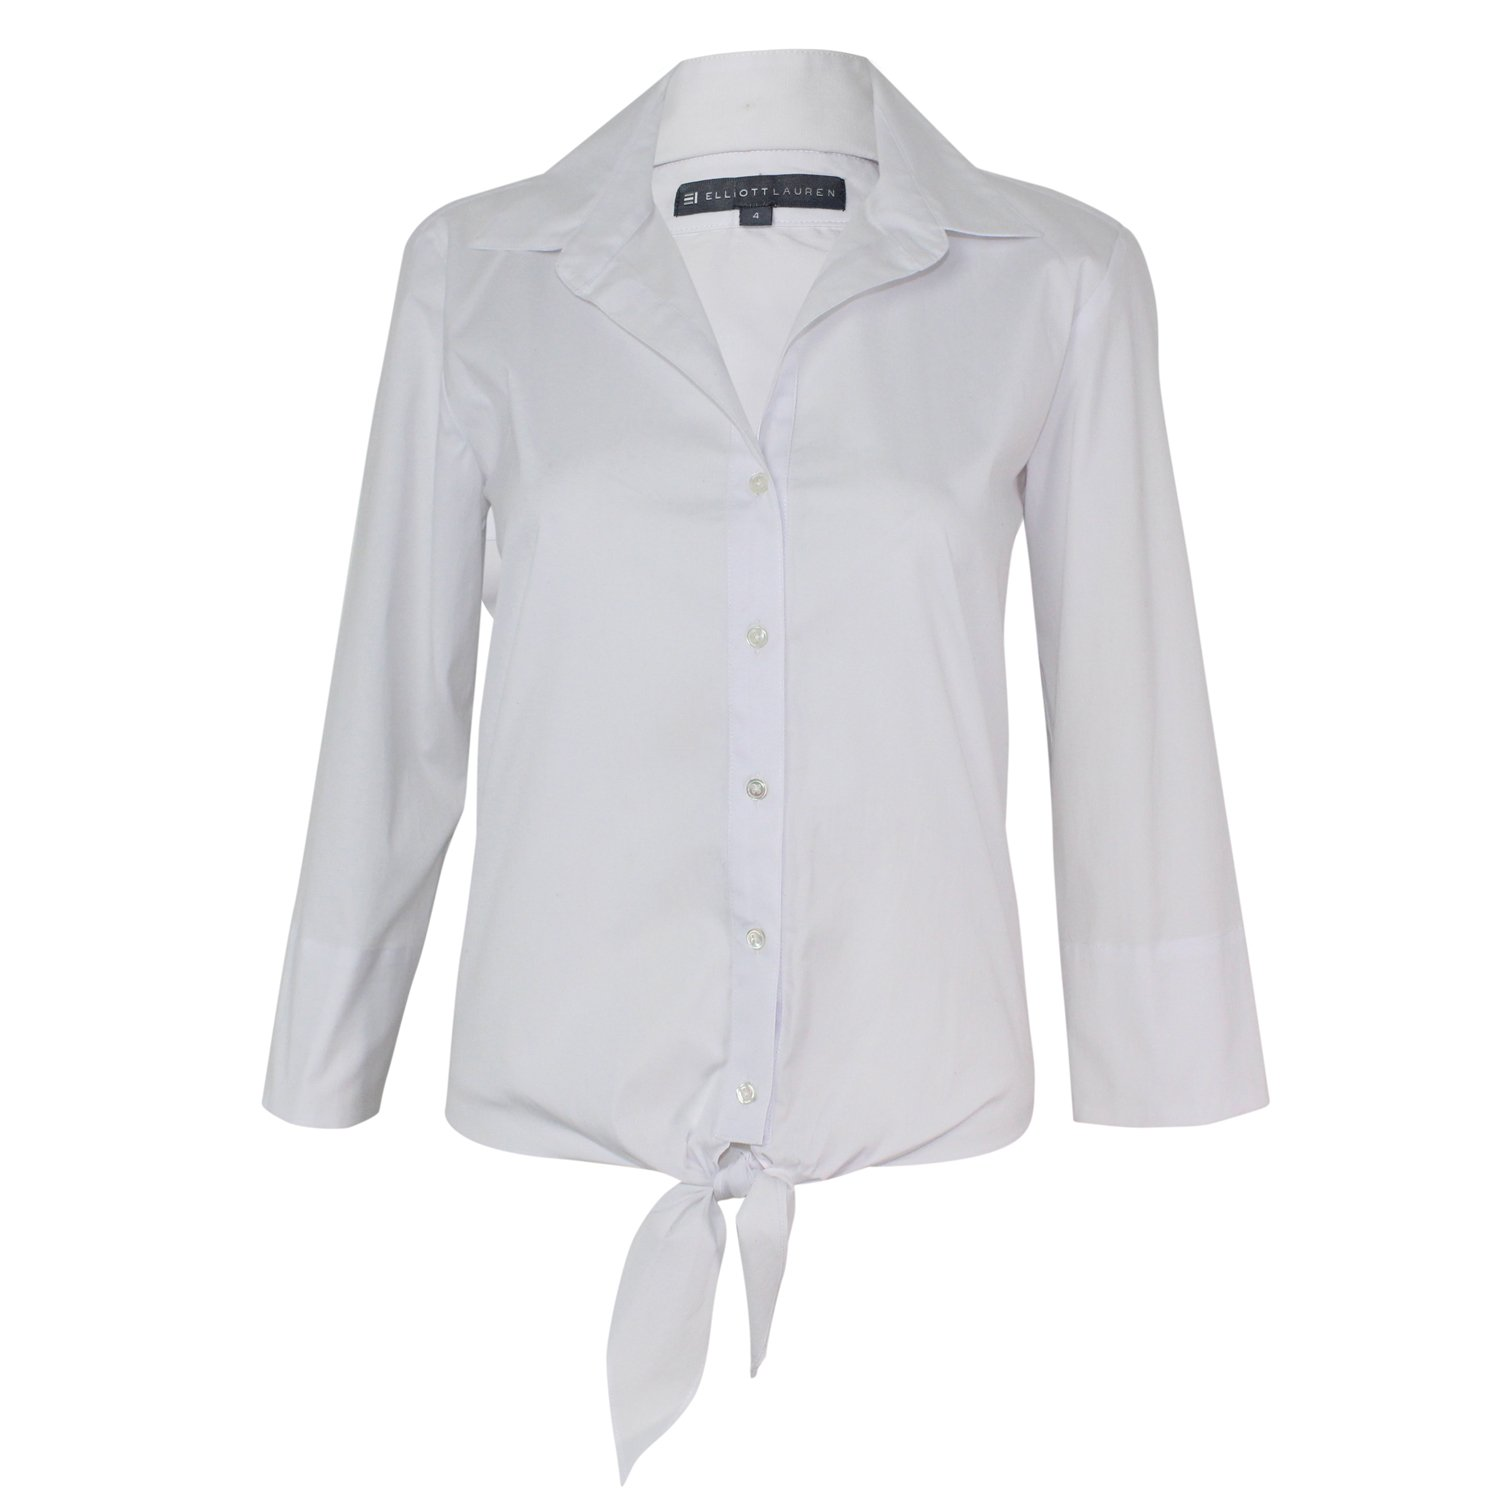 95c340f8 Womens Long Sleeve White Button Up Shirts – EDGE Engineering and ...